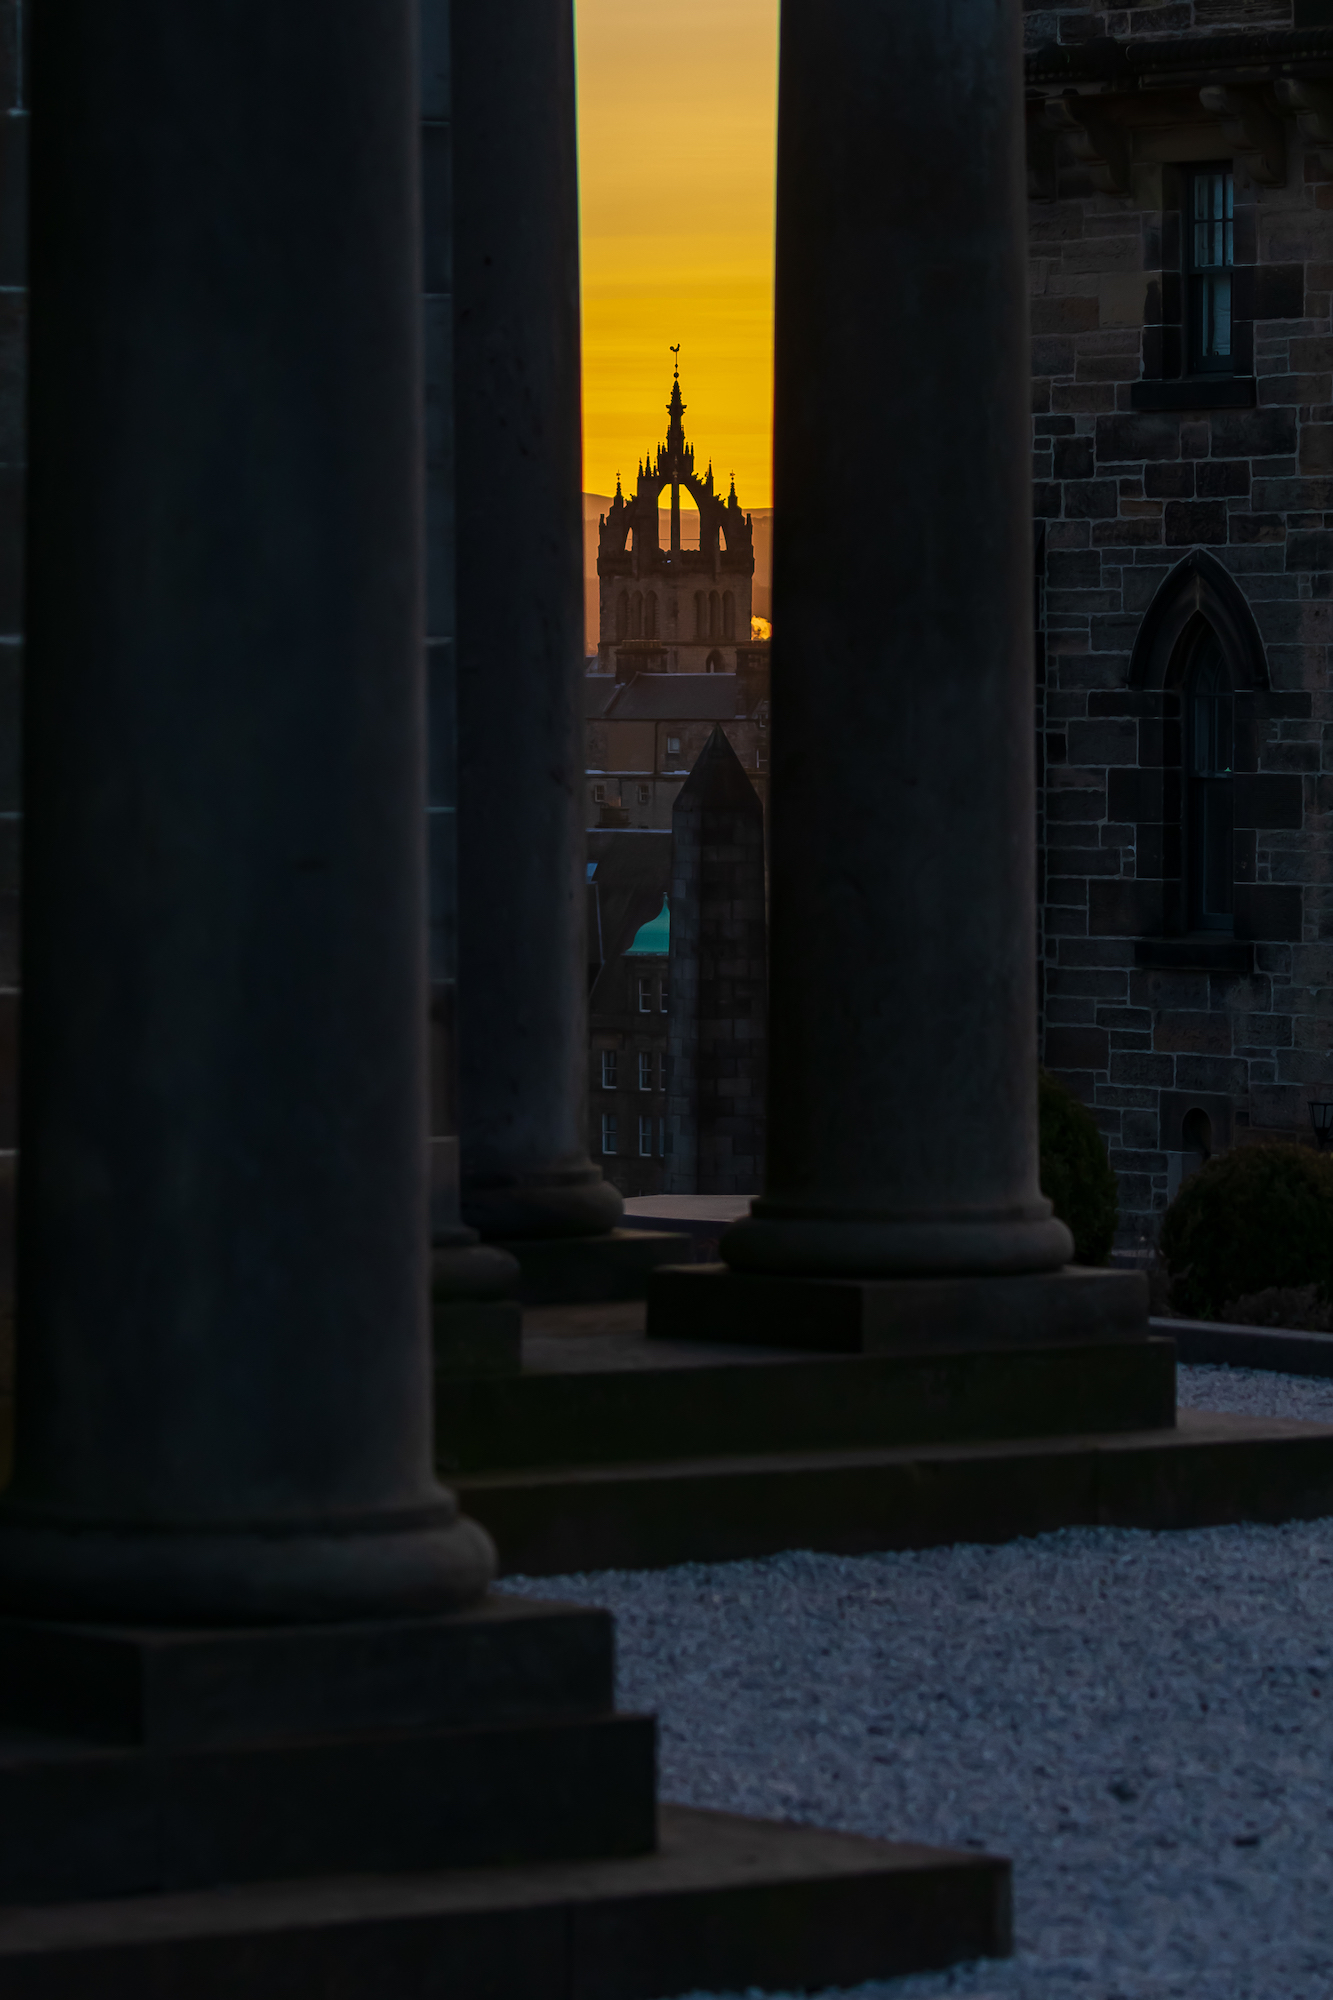 (1366) The Crown Steeple of St Giles' Cathedral in Golden Sunset from The Collective, Calton Hill, Edinburgh, Scotland 2018. Copyright David Wheater.jpg